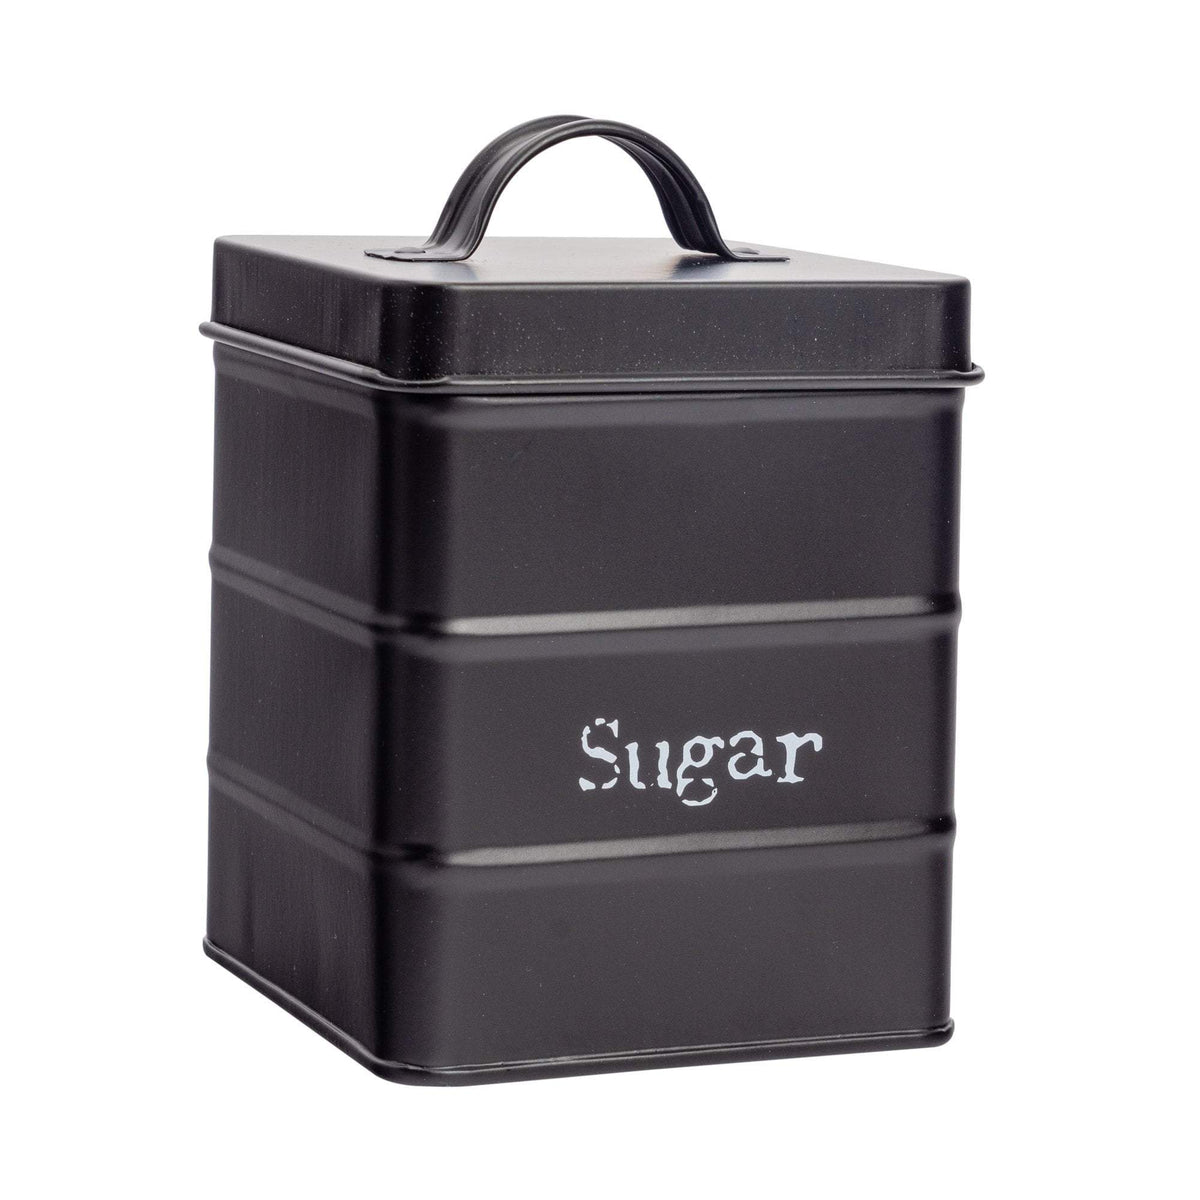 Harbour Housewares Vintage Metal Kitchen Sugar Canister - Black